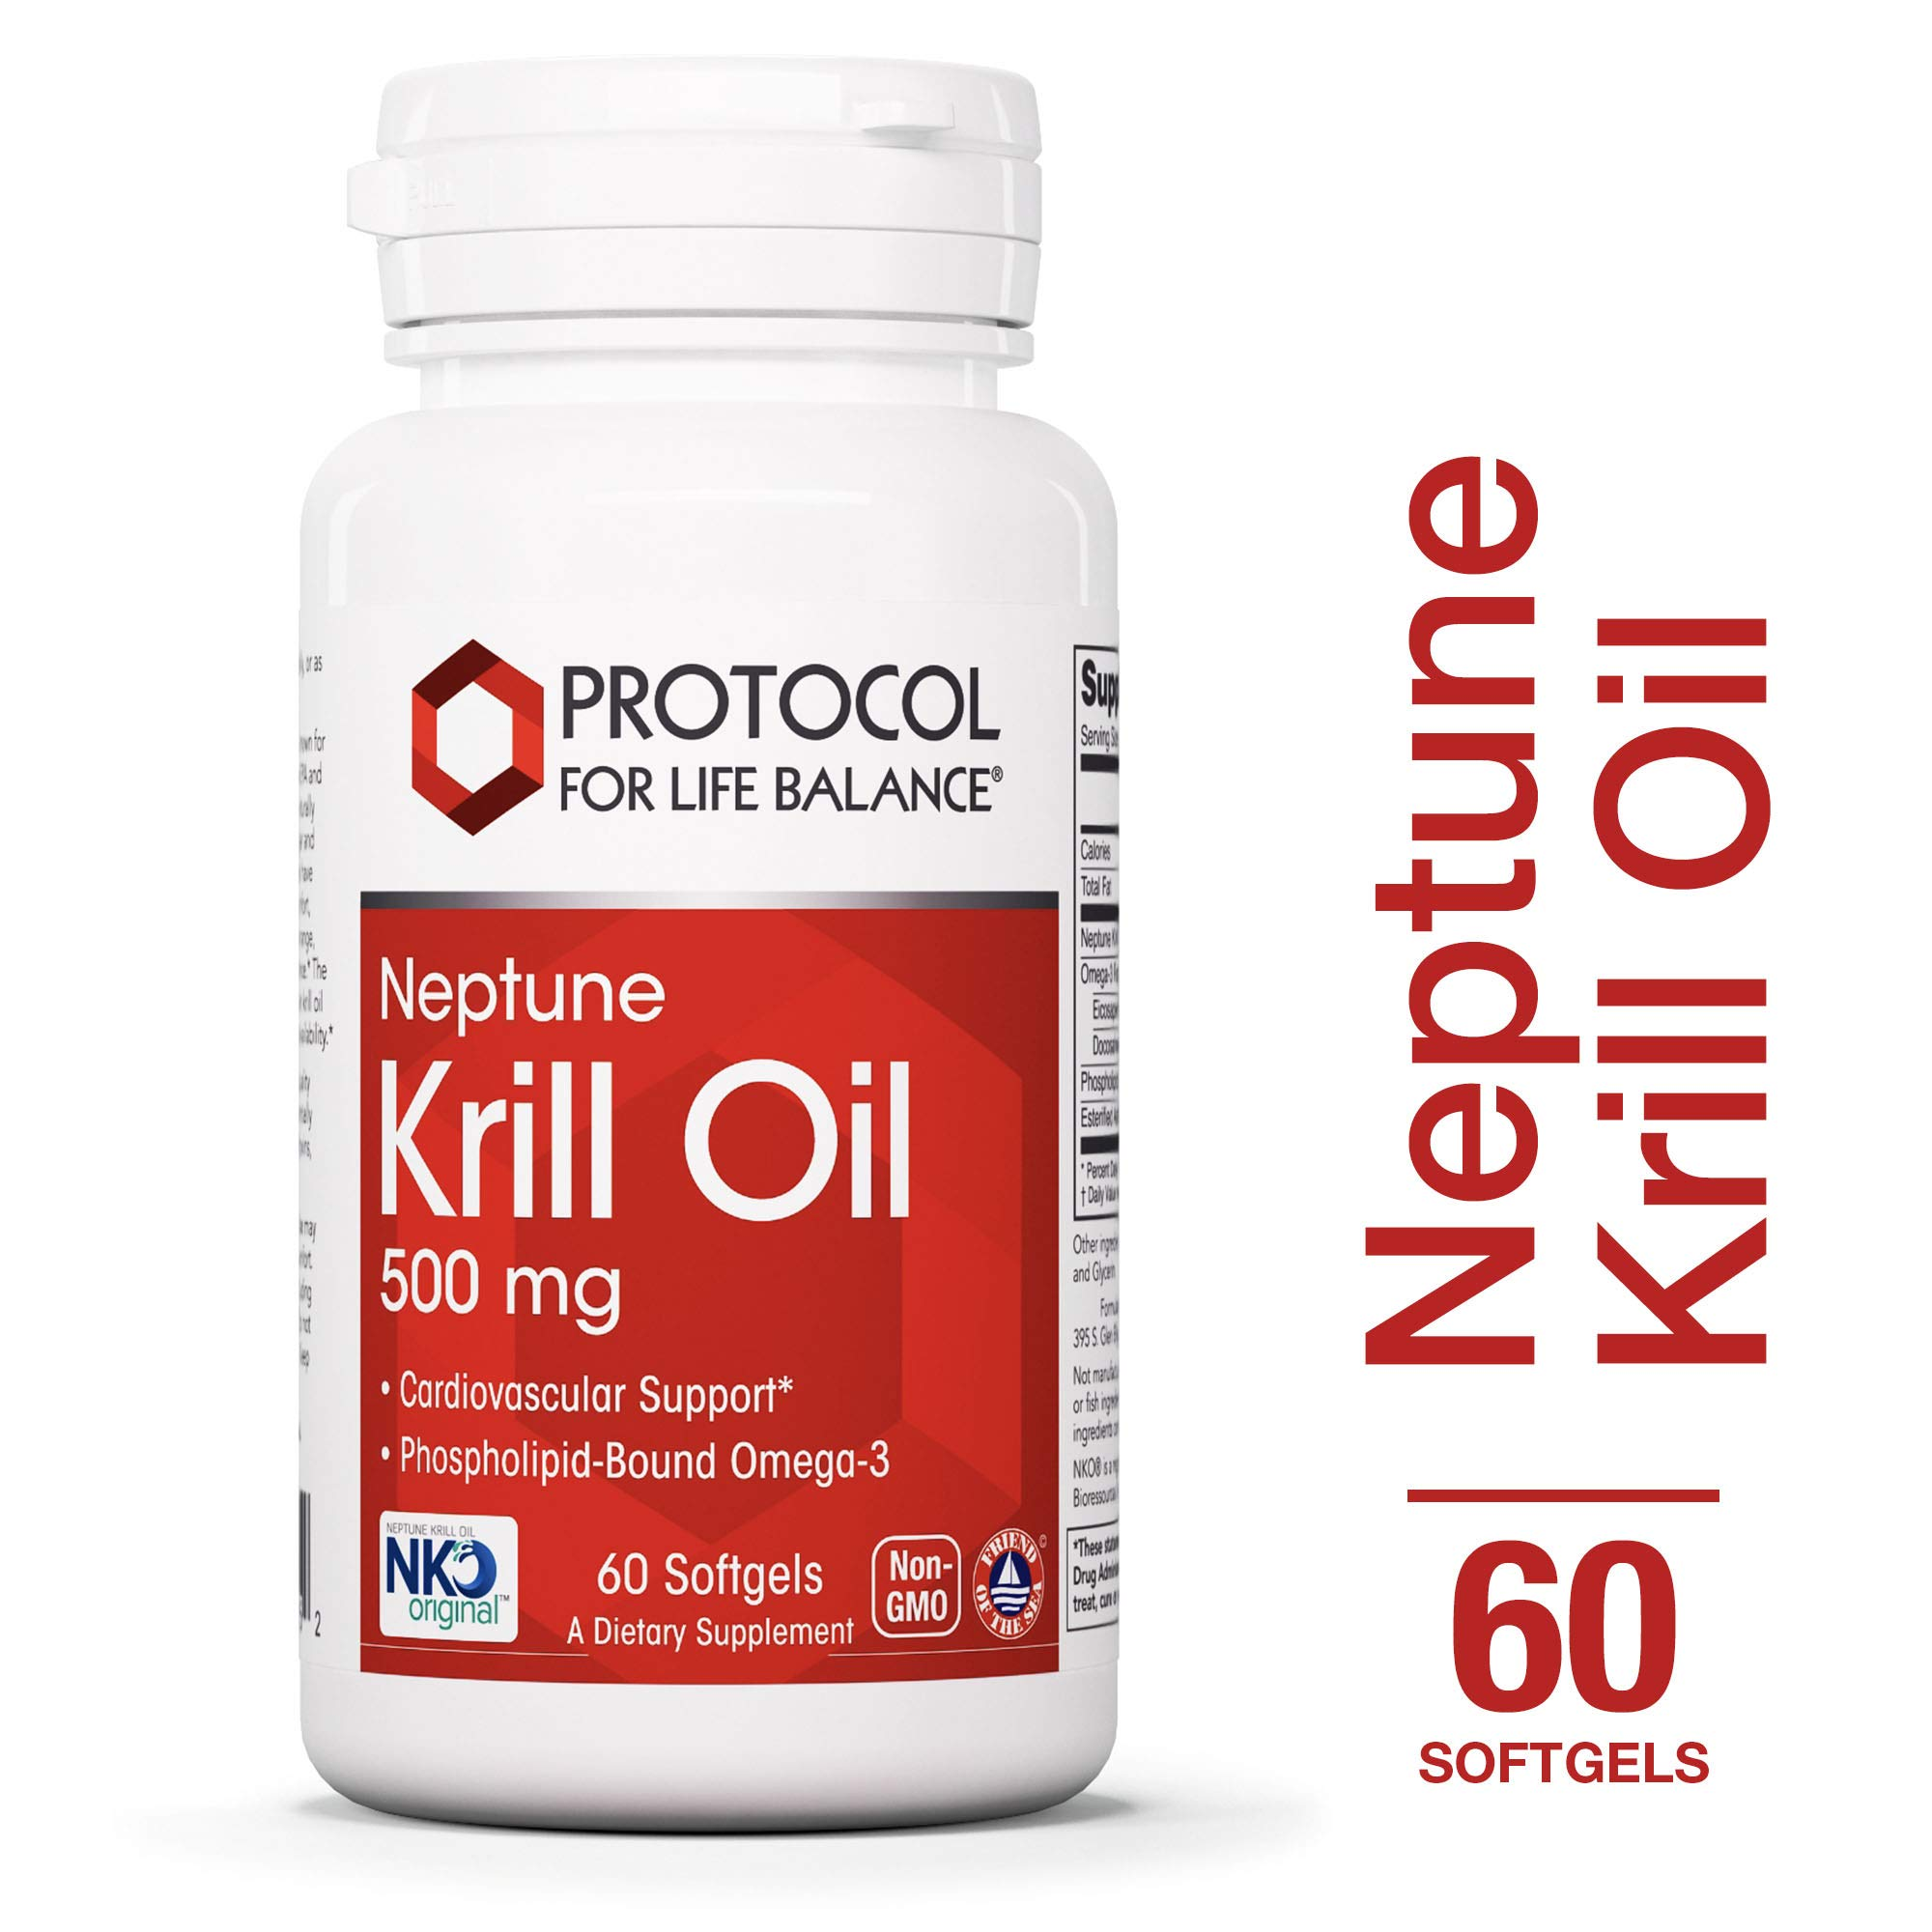 Protocol For Life Balance - Neptune Krill Oil 500 mg - Contaminant Free High for Cardiovascular, Immune, and Joint Support - 60 Softgels by Protocol For Life Balance